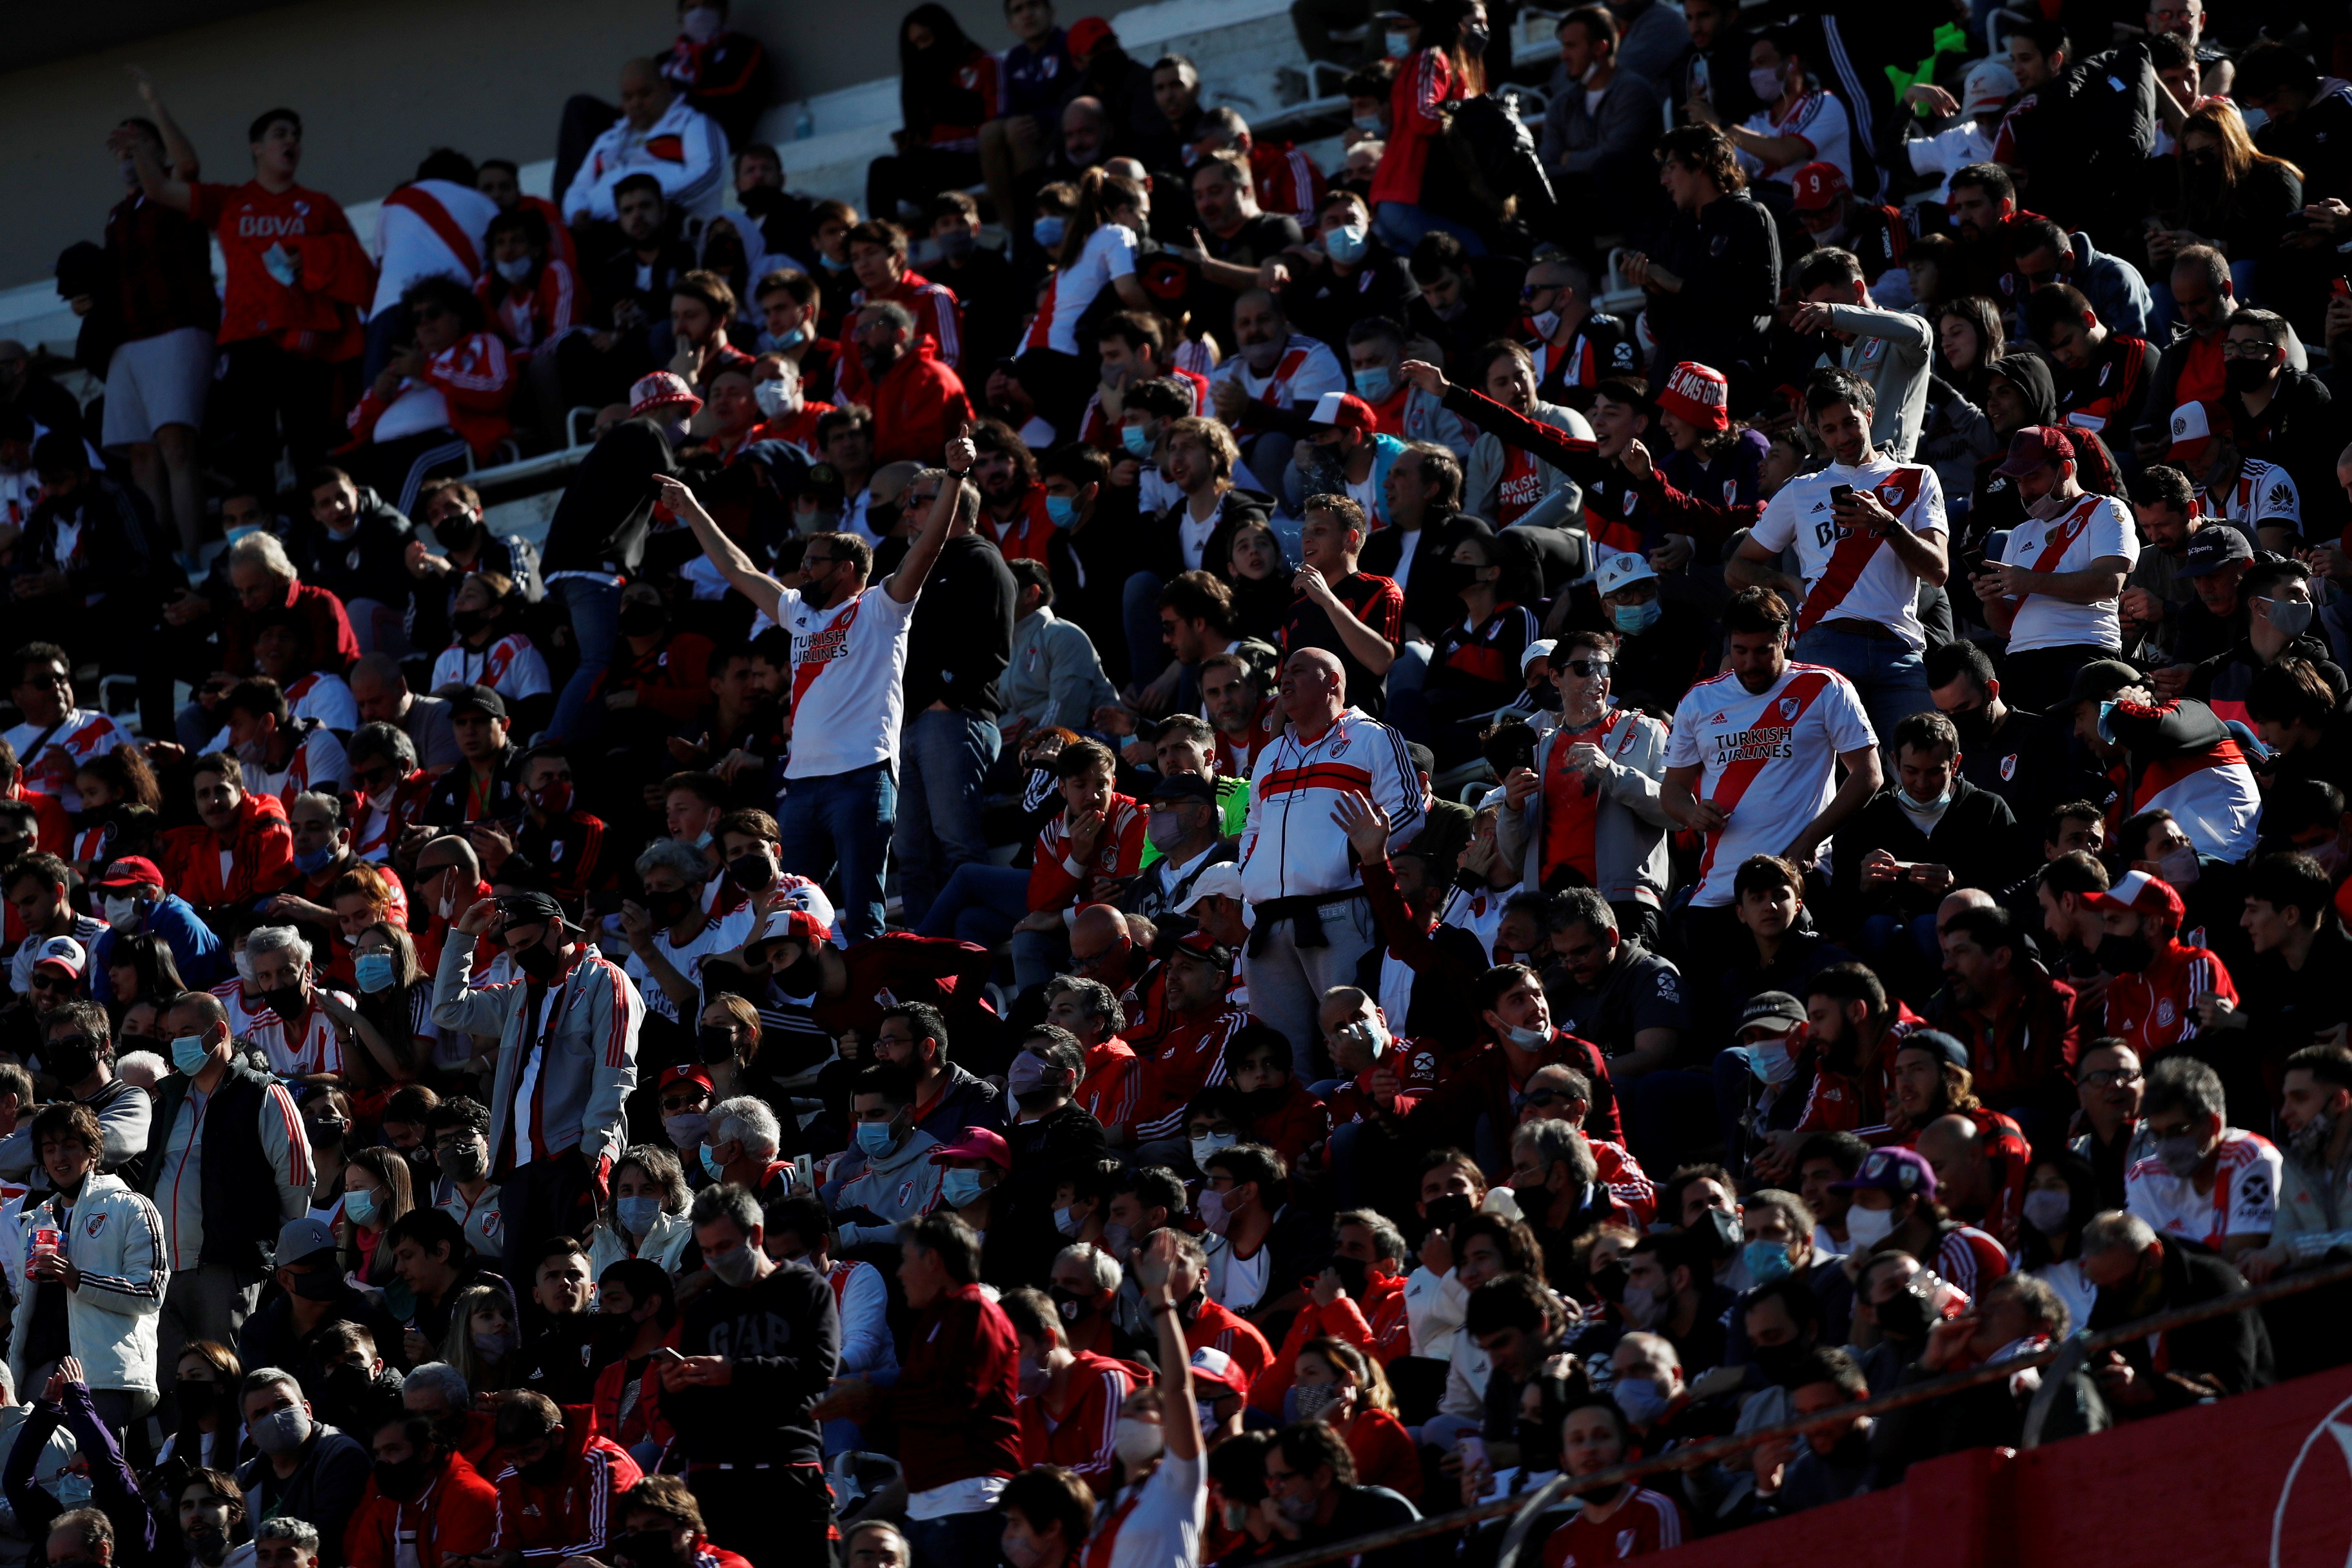 Soccer Football - Primera Division - River Plate v Boca Juniors - Estadio Monumental, Buenos Aires, Argentina - October 3, 2021  River Plate fans inside the stadium before the match REUTERS/Agustin Marcarian